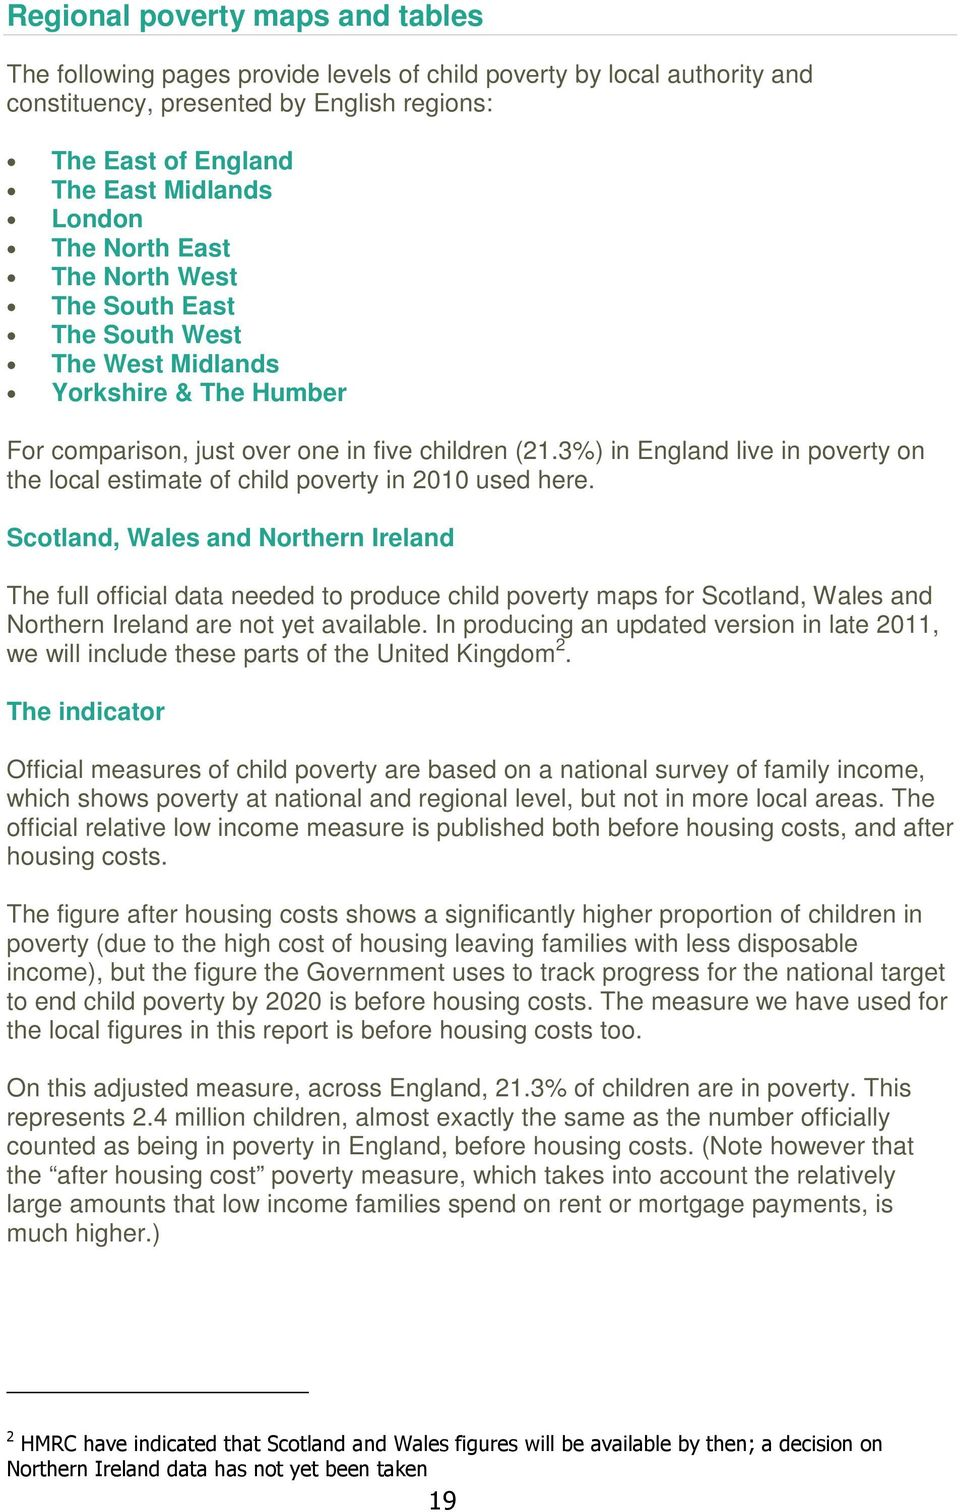 3%) in England live in poverty on the local estimate of child poverty in 2010 used here.